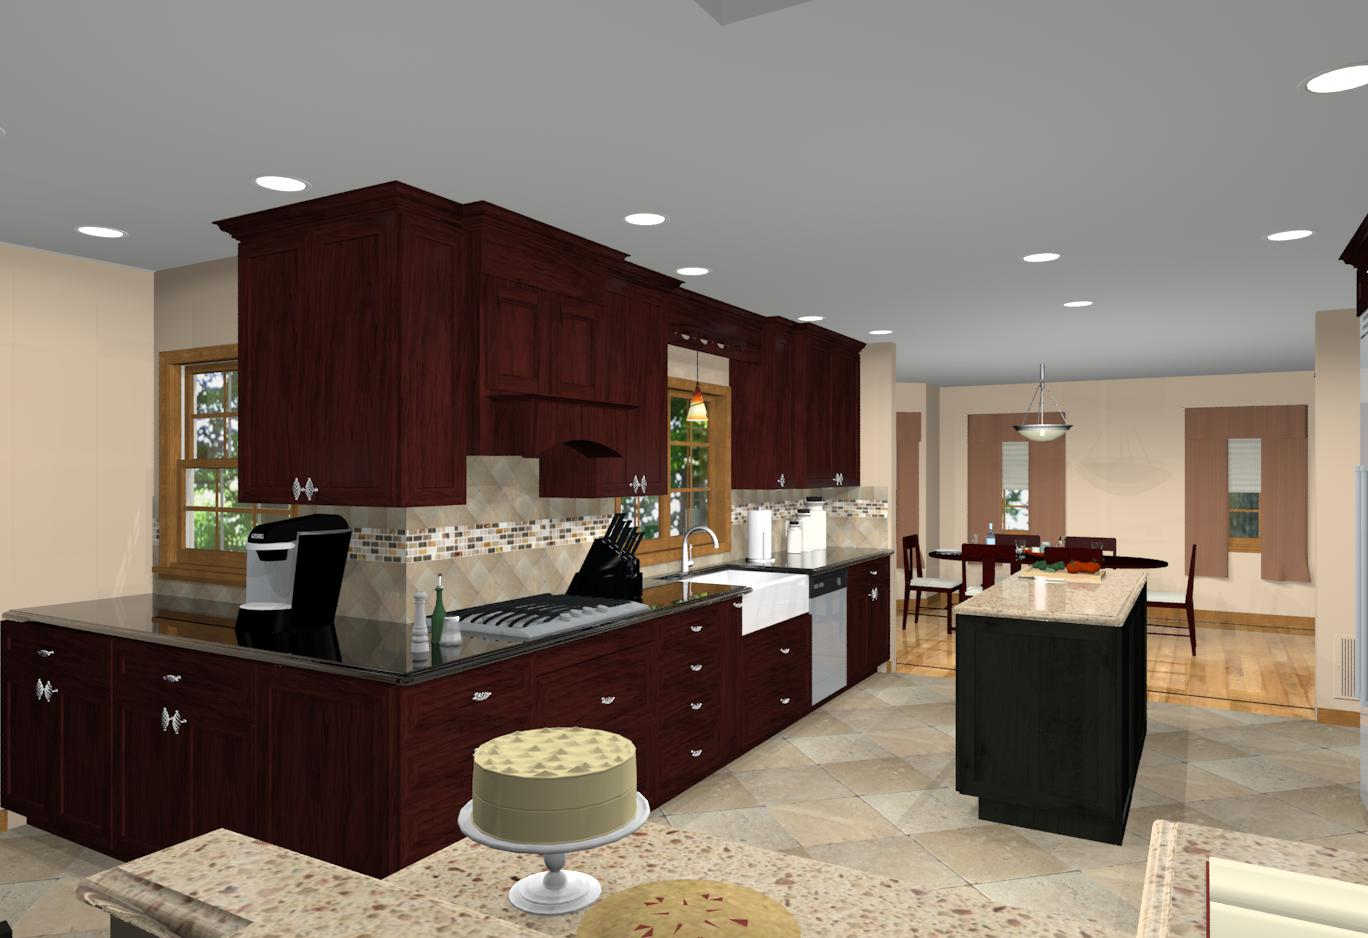 Sea Girt 08750 Design Build Remodeling And New Home